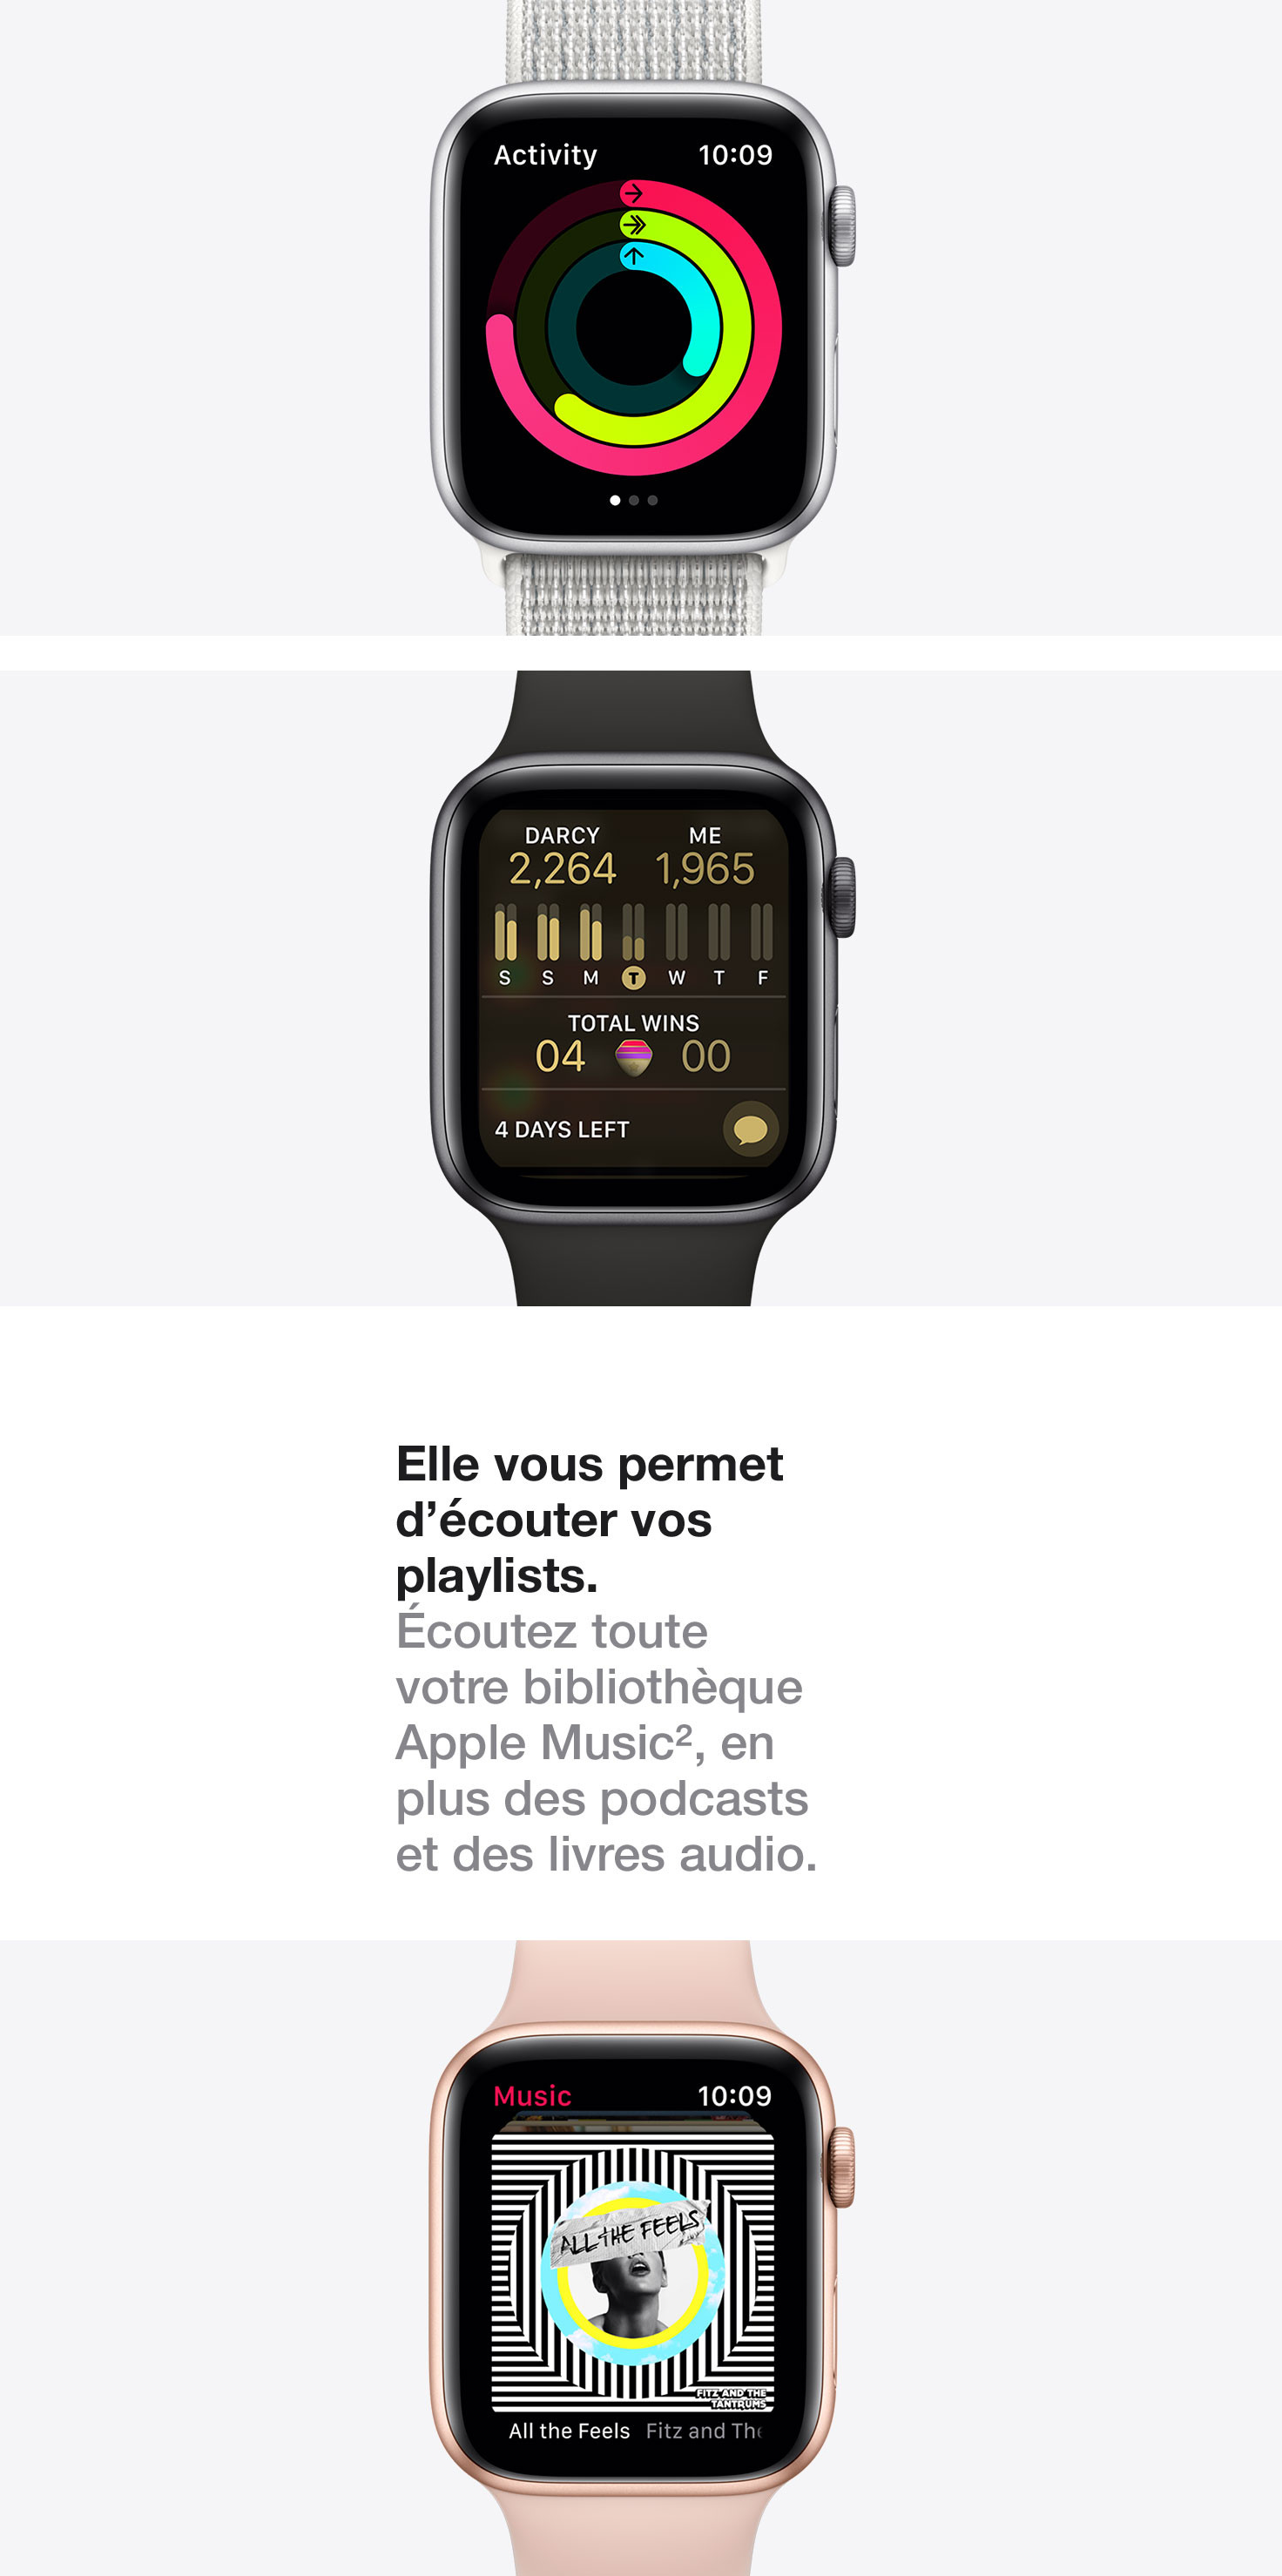 AppleWatchSeries5-productpage_fr-mobile_05.jpg